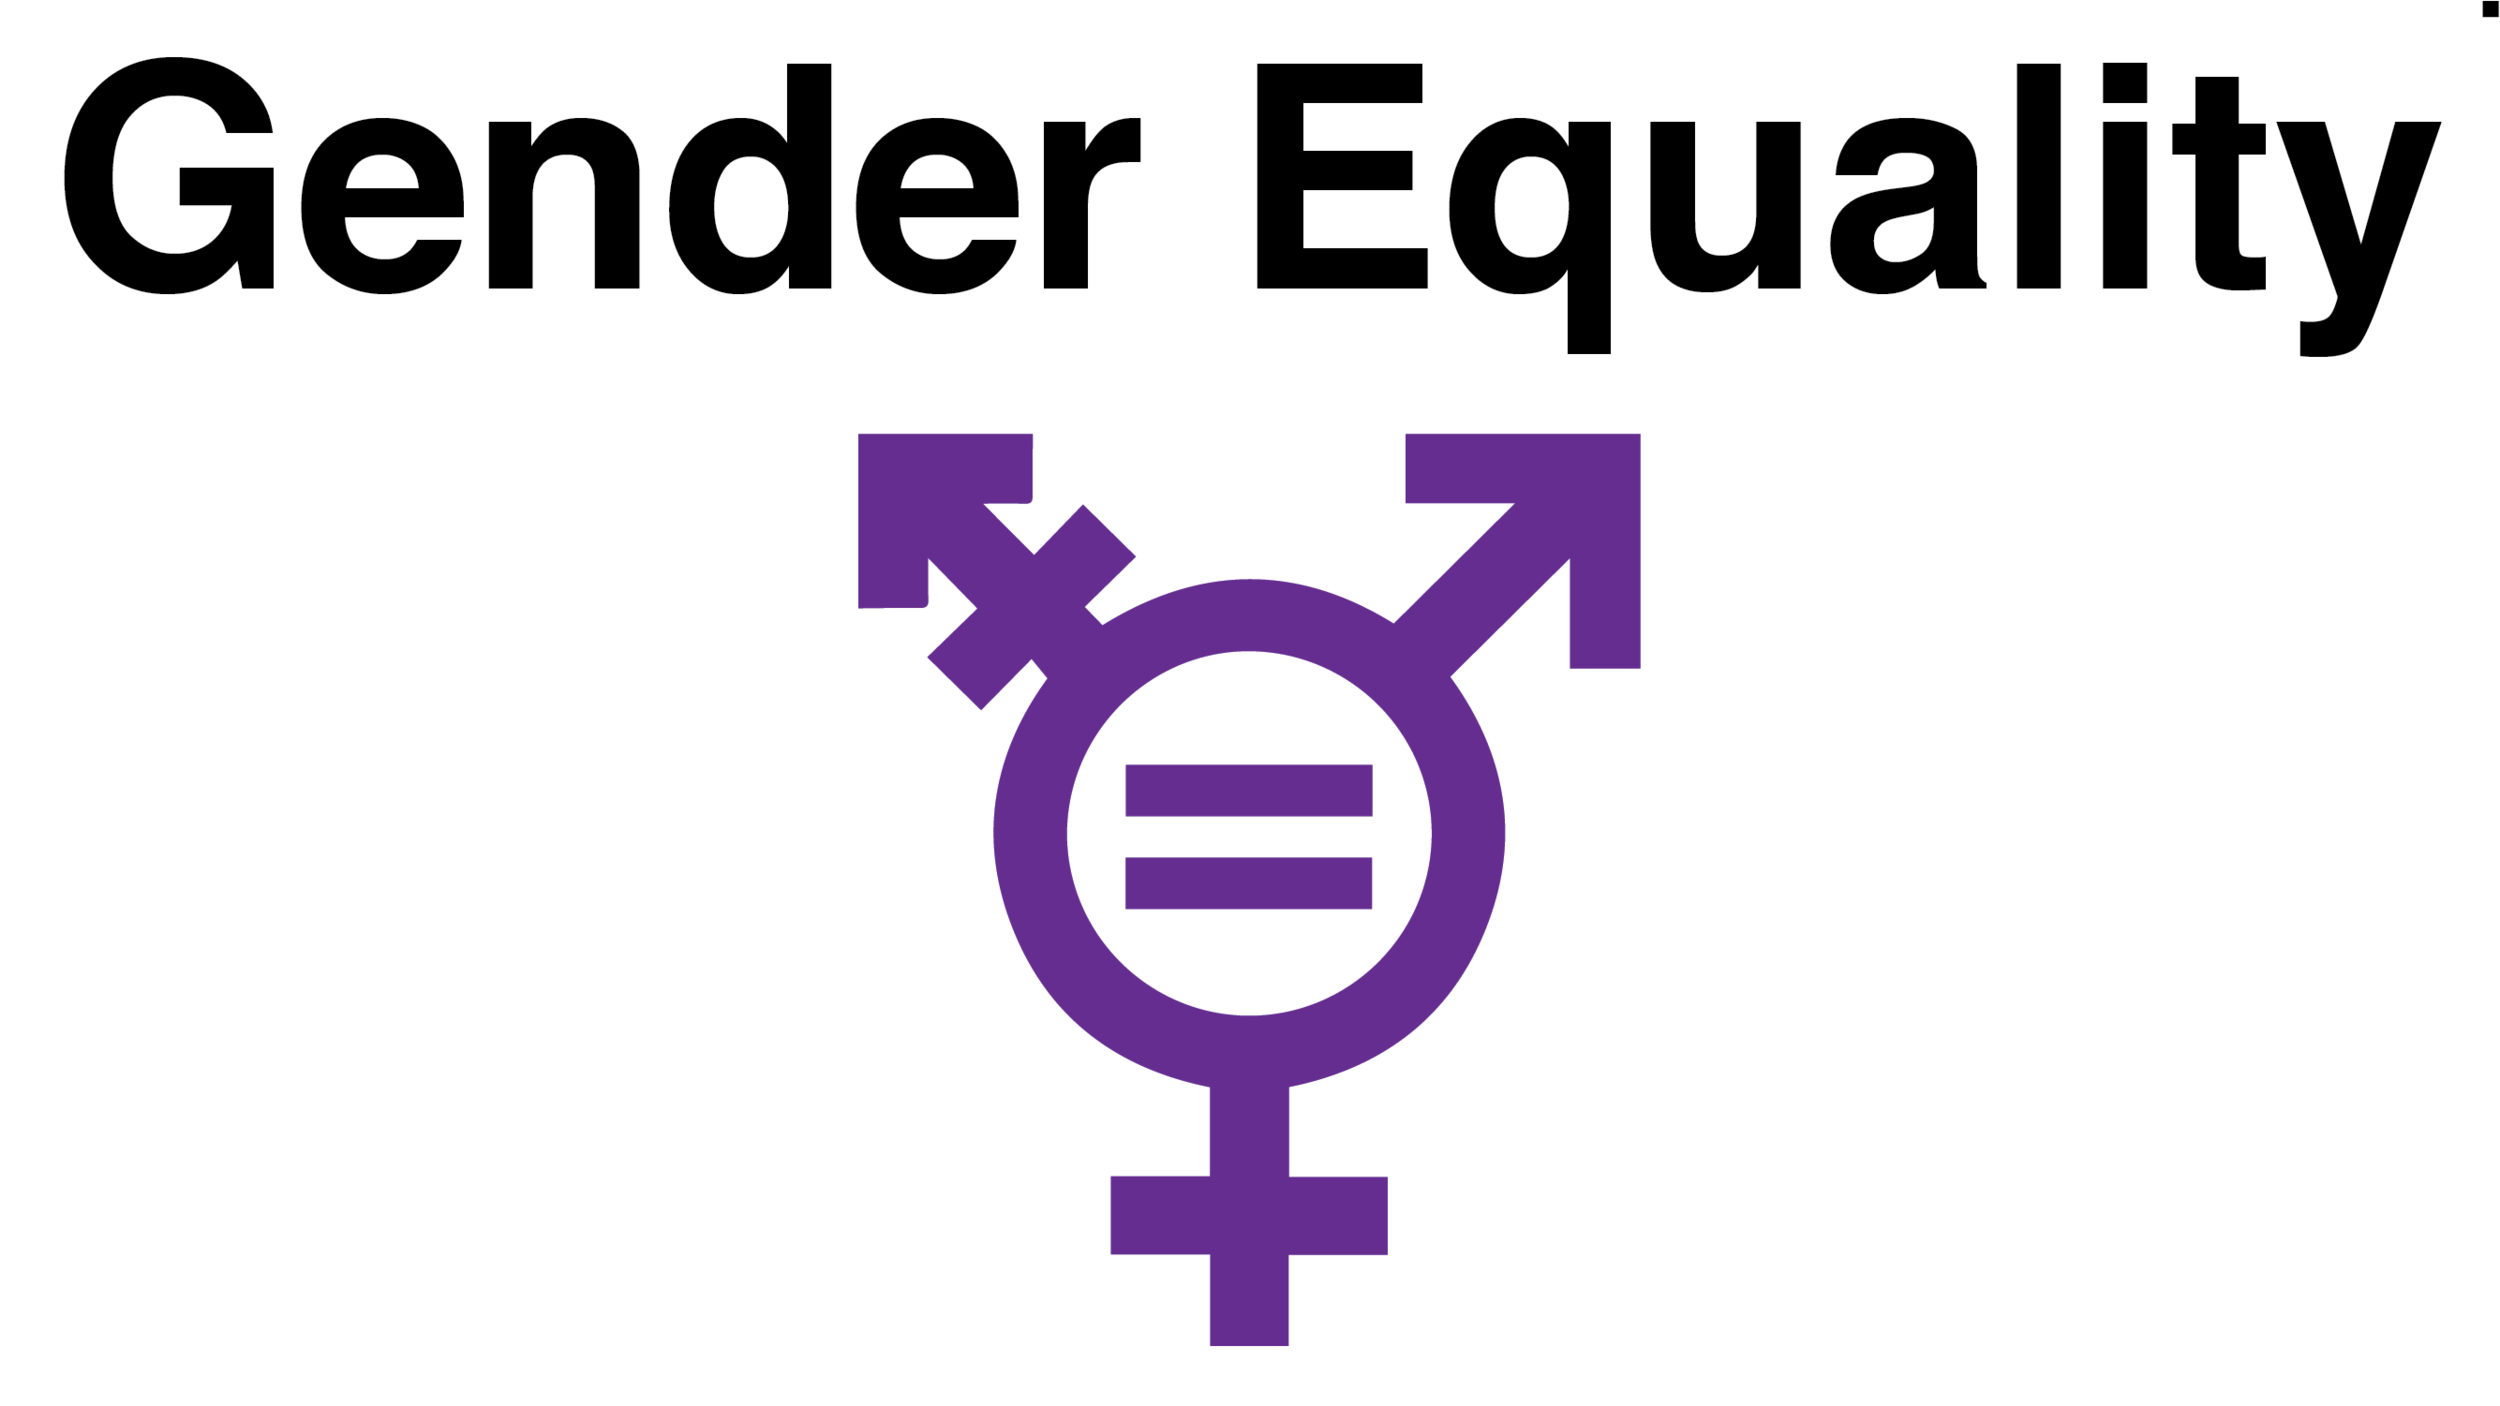 Equity for all Gendered Workers